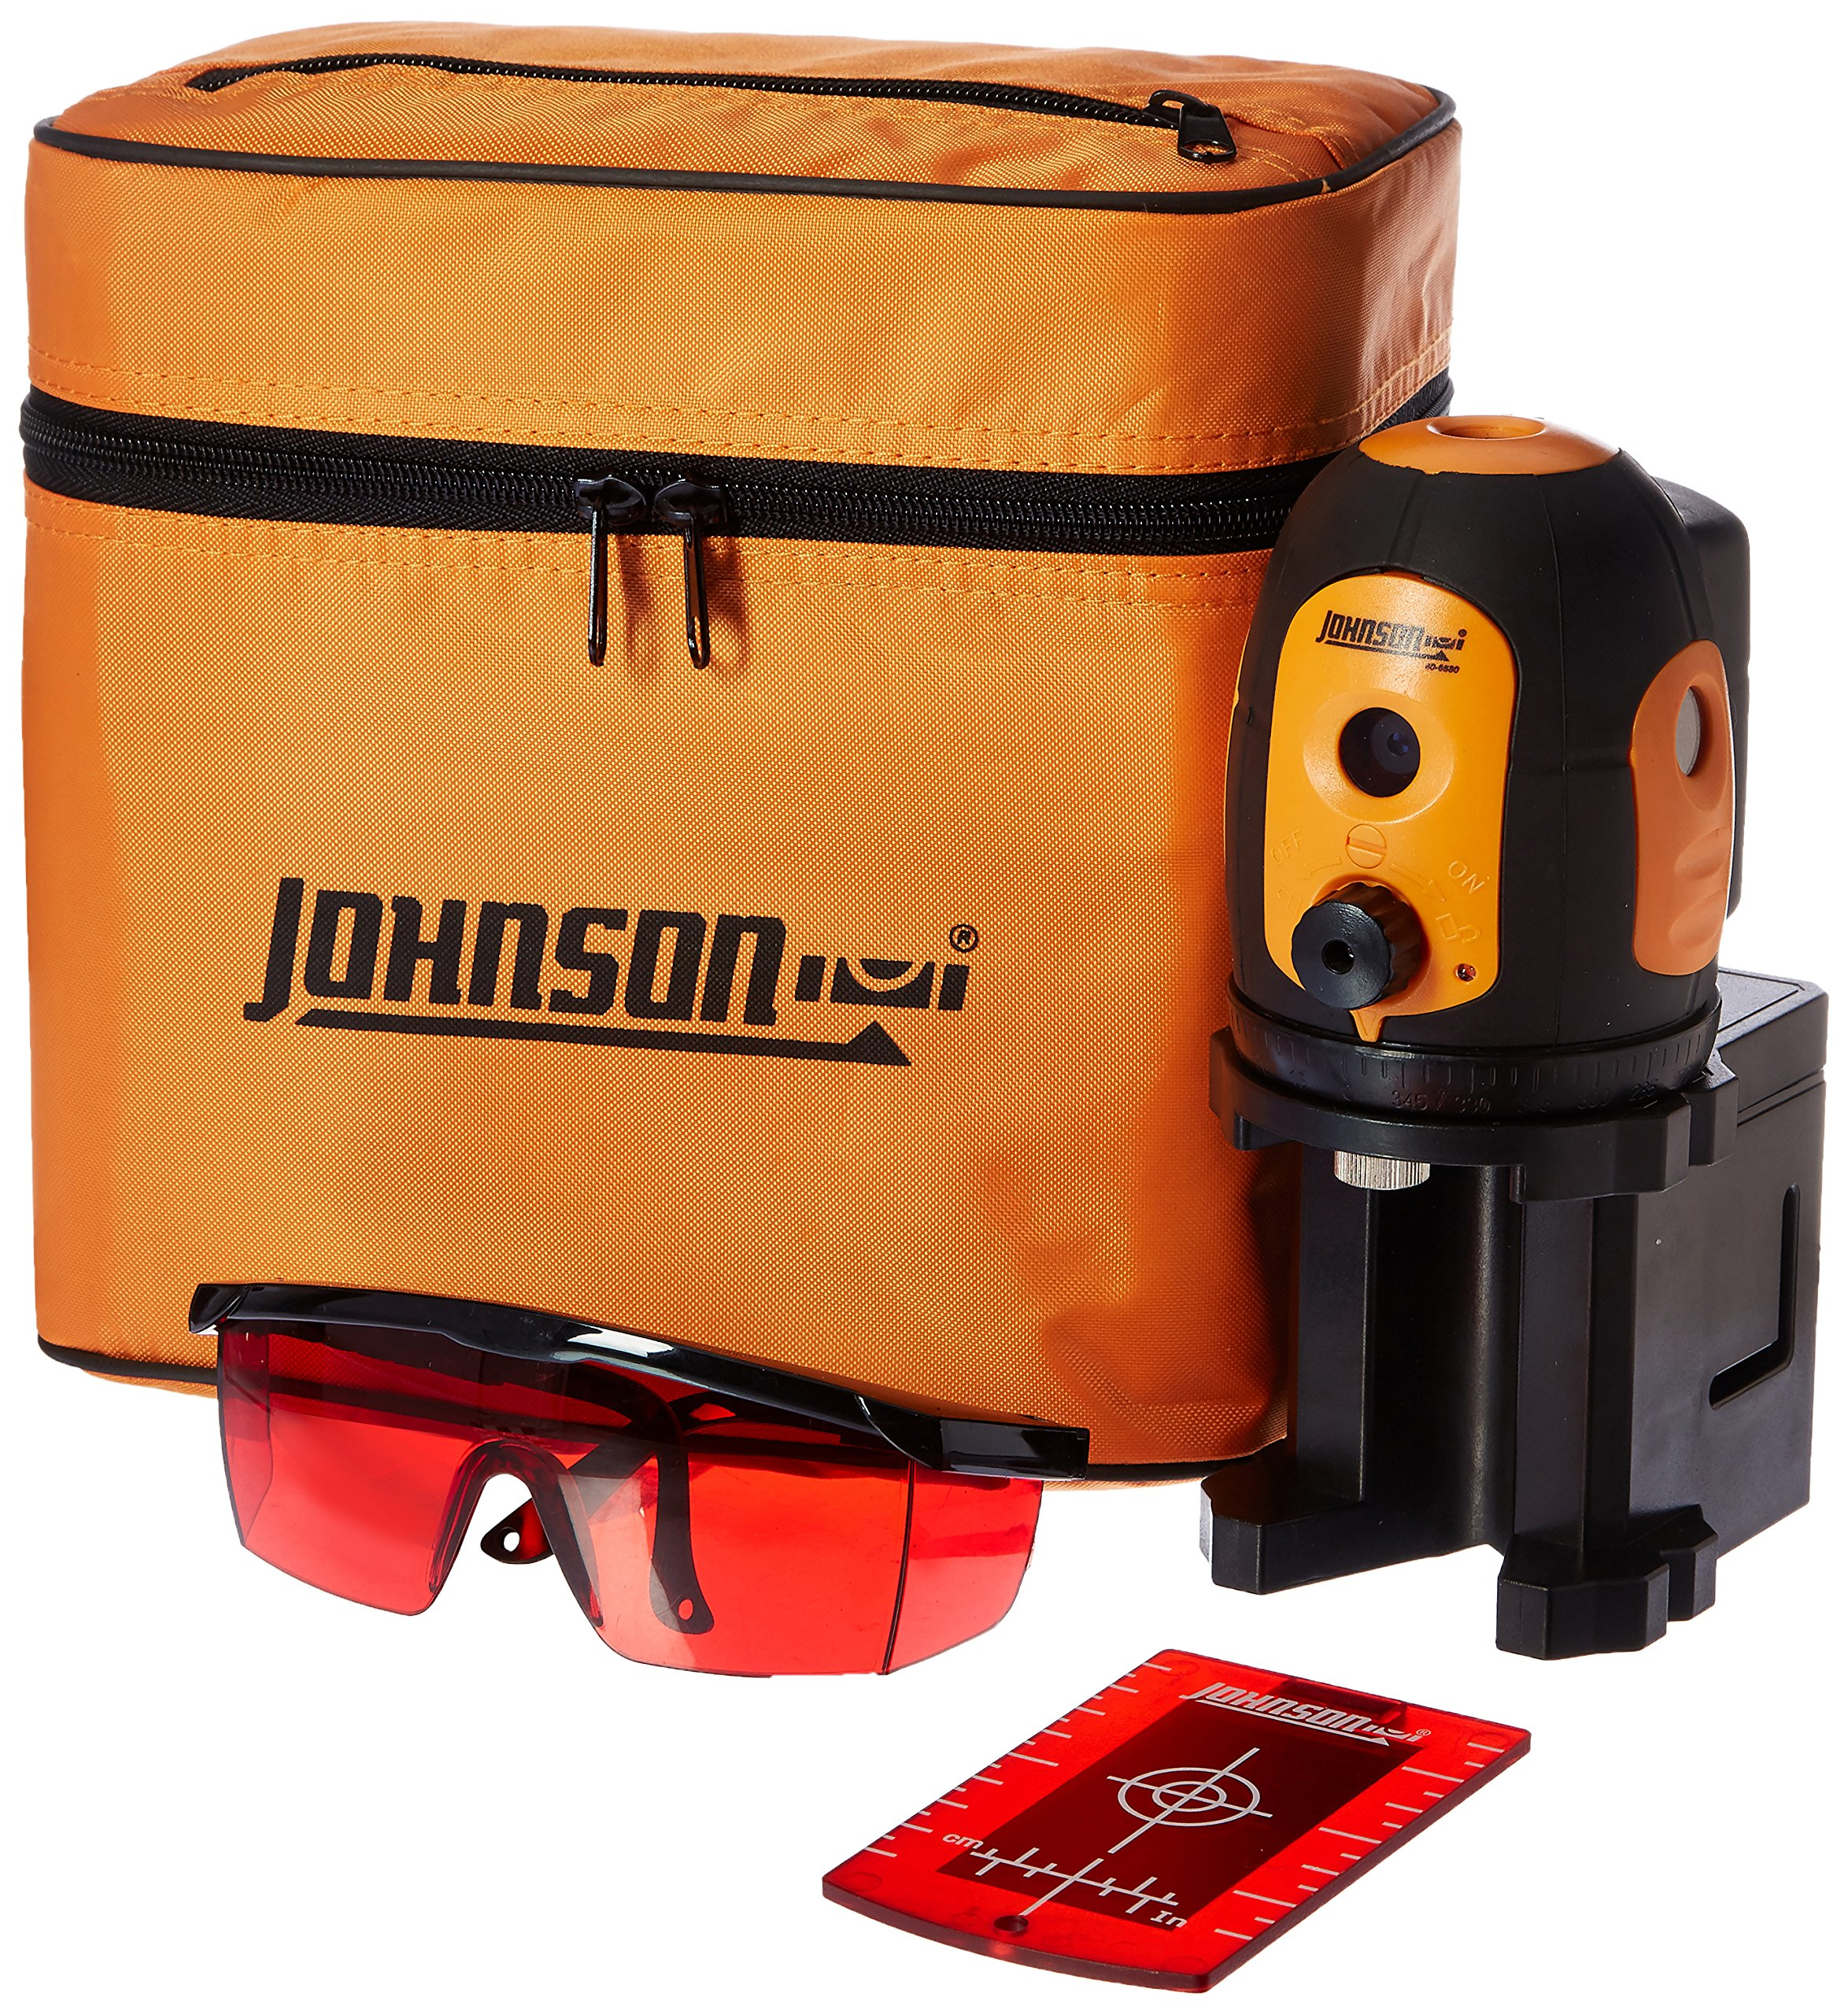 Johnson 40-6680 Self-leveling Five beam Dot Laser